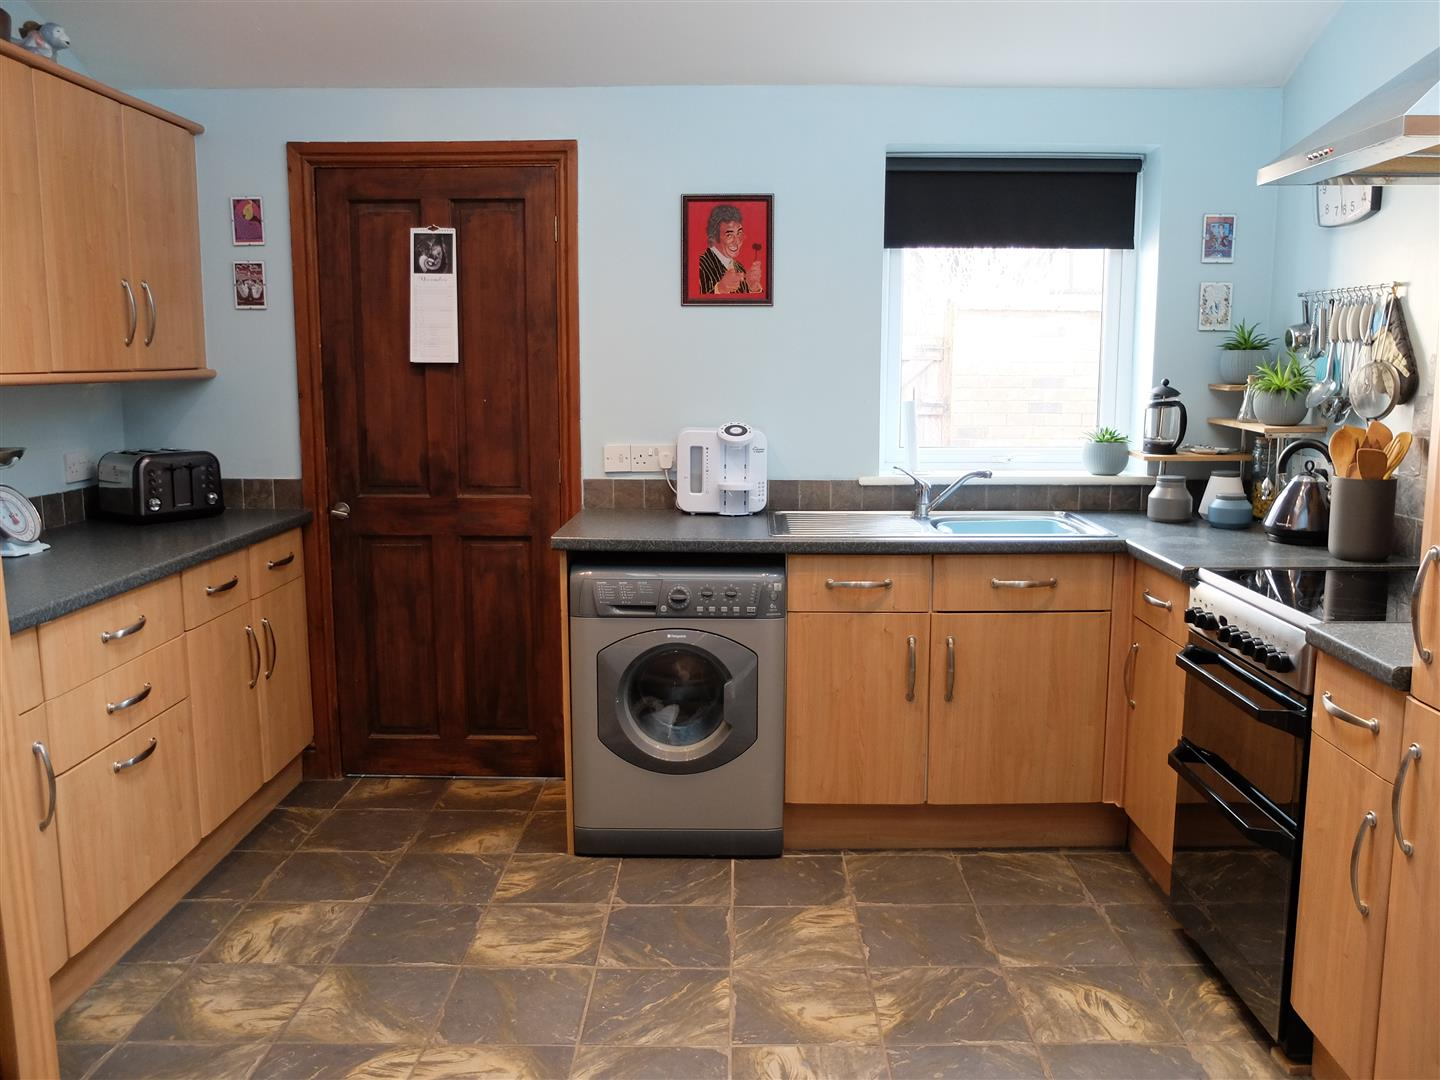 12 Maryport Cottages Carlisle 2 Bedrooms House - End Terrace For Sale